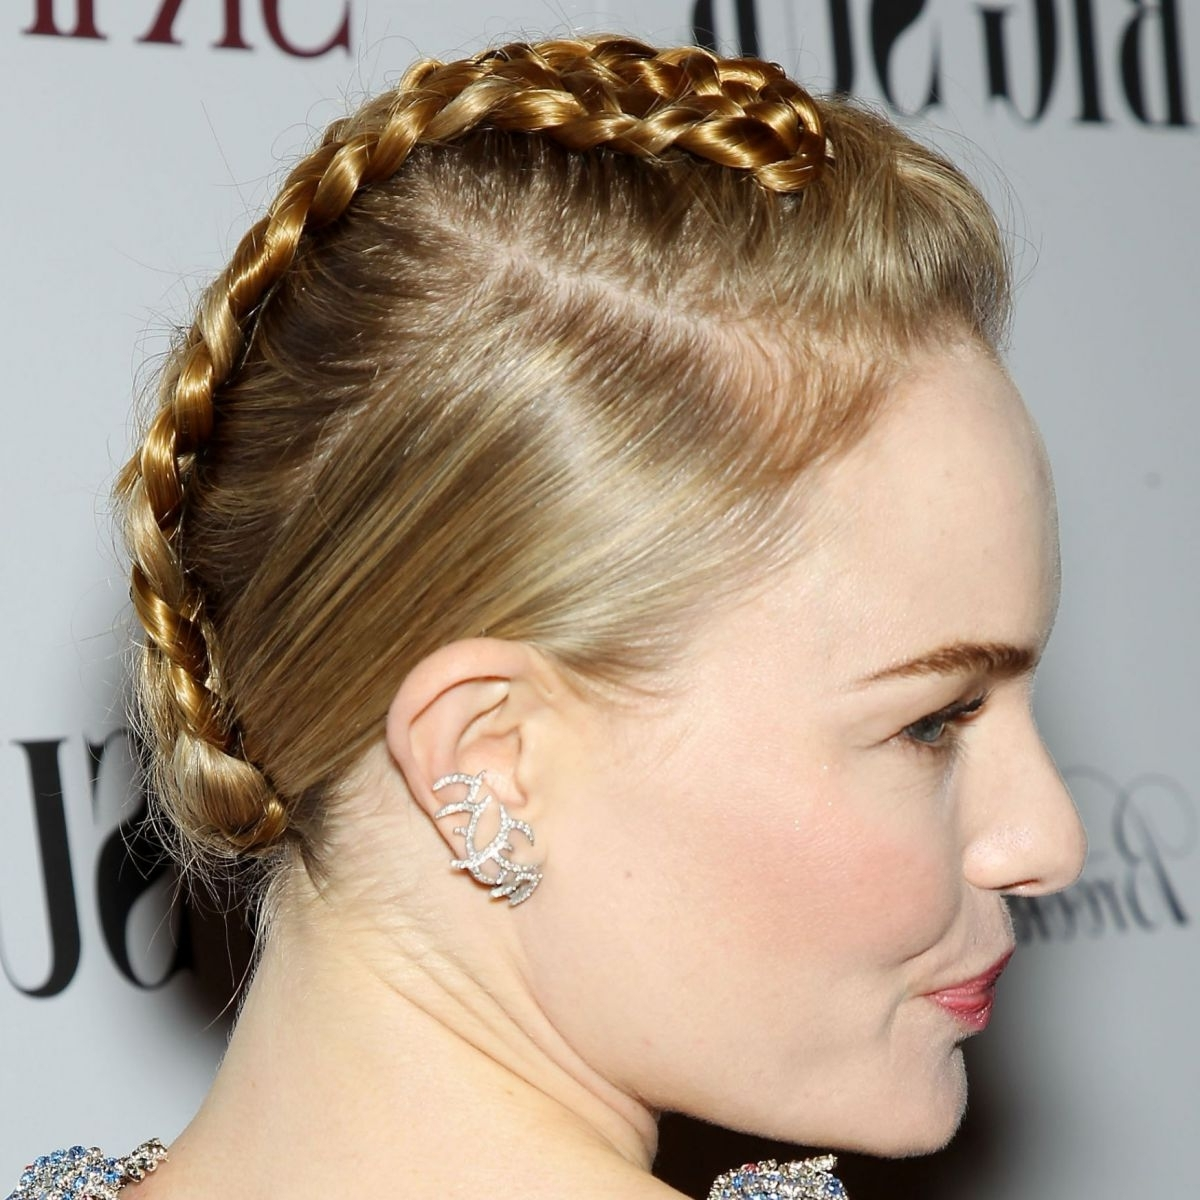 Kate Bosworth's Braided Faux Hawk Tutorial Regarding Widely Used Fauxhawk Ponytail Hairstyles (View 7 of 20)